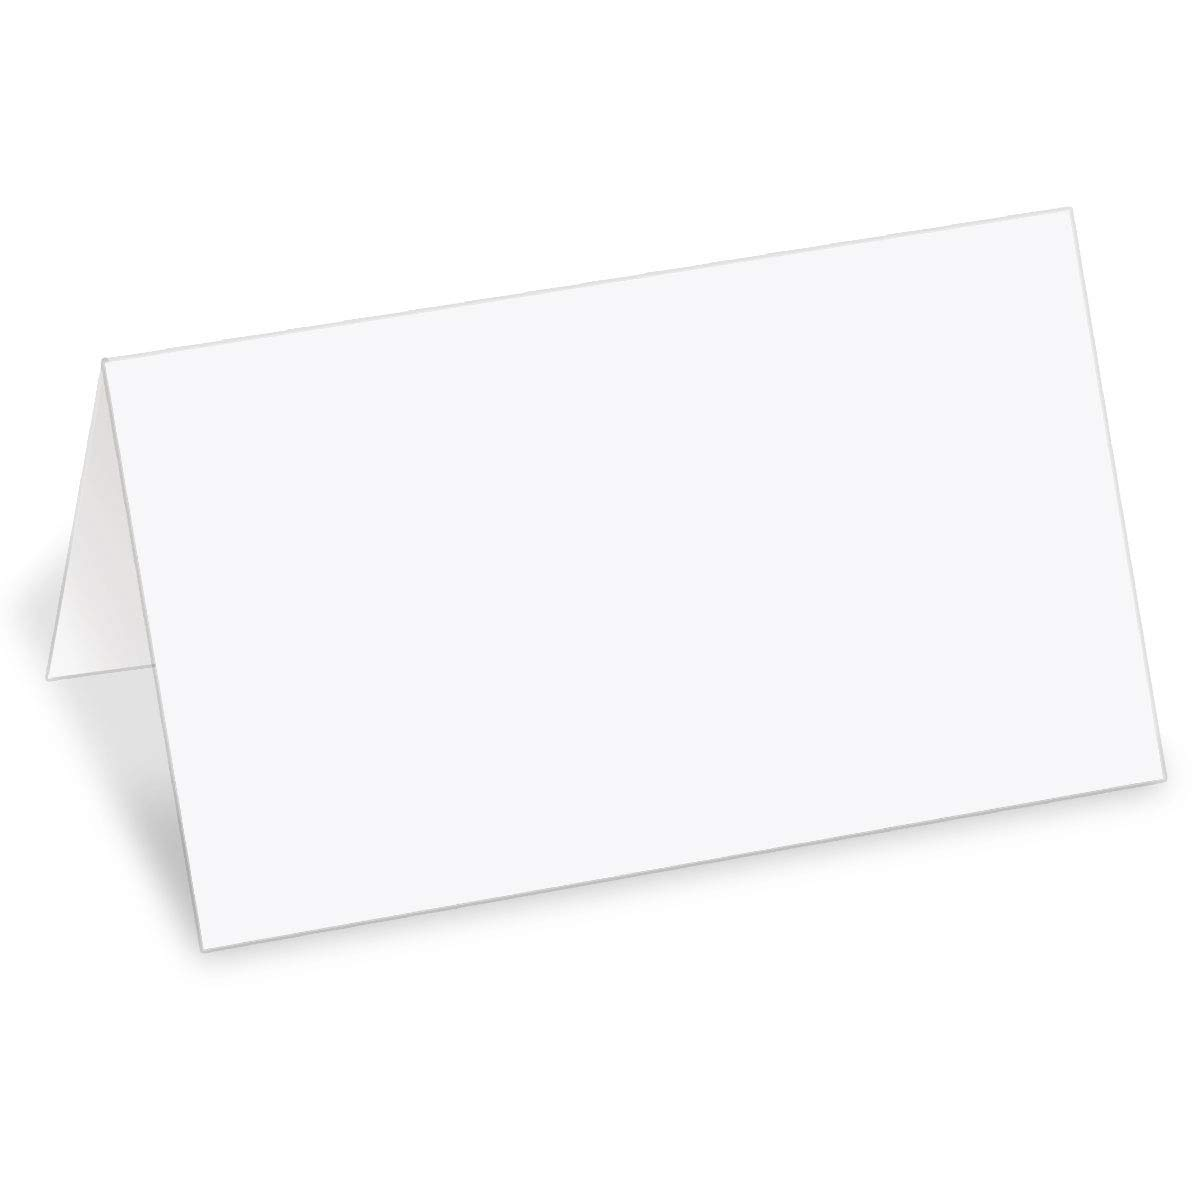 PaperDirect 38lb White Cover Stock Folded Place Cards, Micro-Perforated, 2'' x 3 1/2'', 400/pack, Laser and Inkjet Compatible by PaperDirect